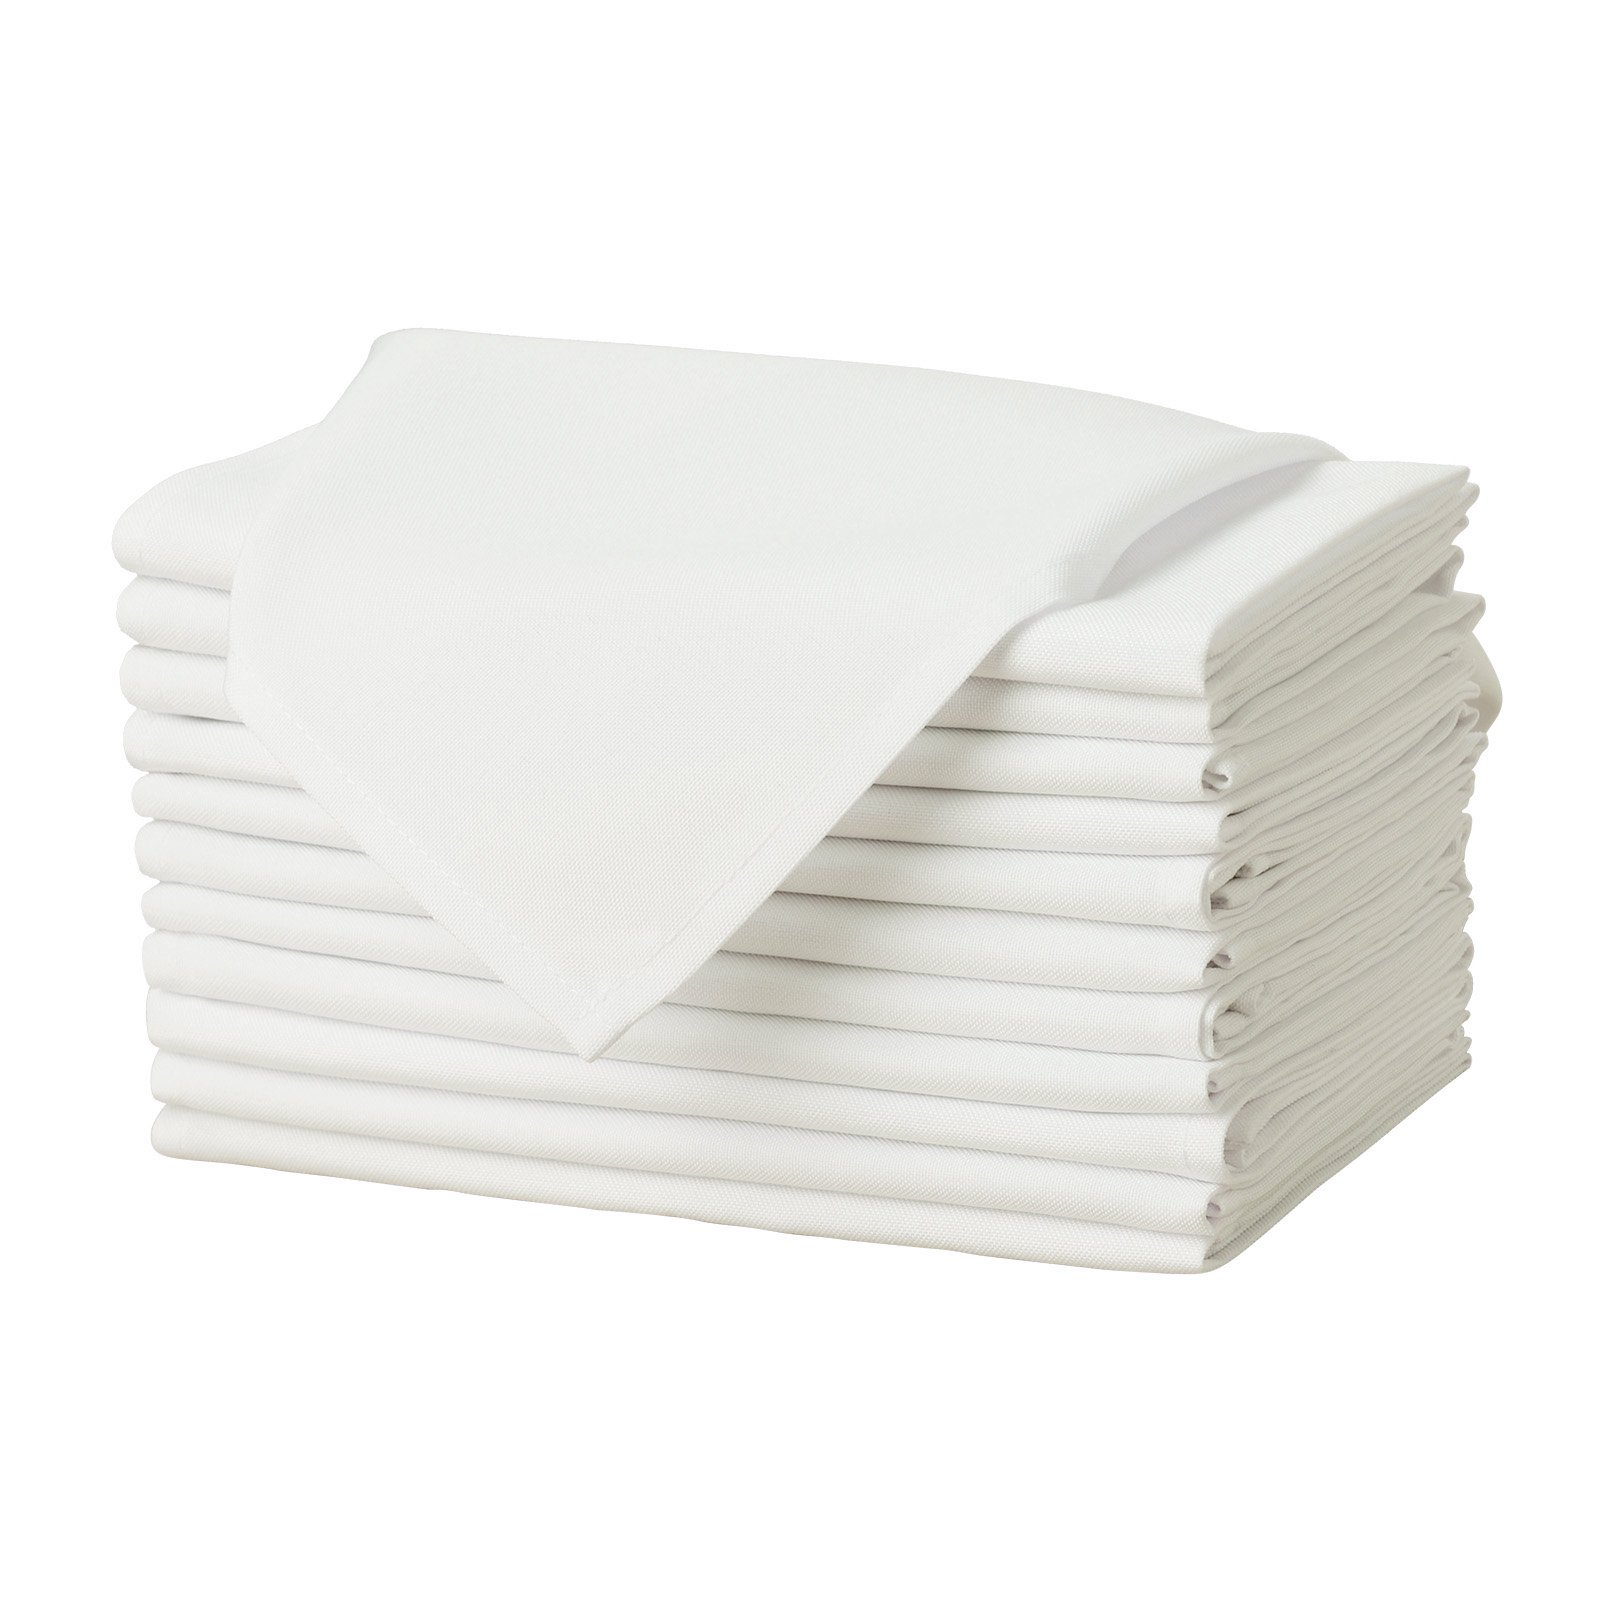 Remedios Set of 12 Oversized 20x20 Polyester Cloth Napkins Wedding Restaurant Banquet Home Dinner, Ivory